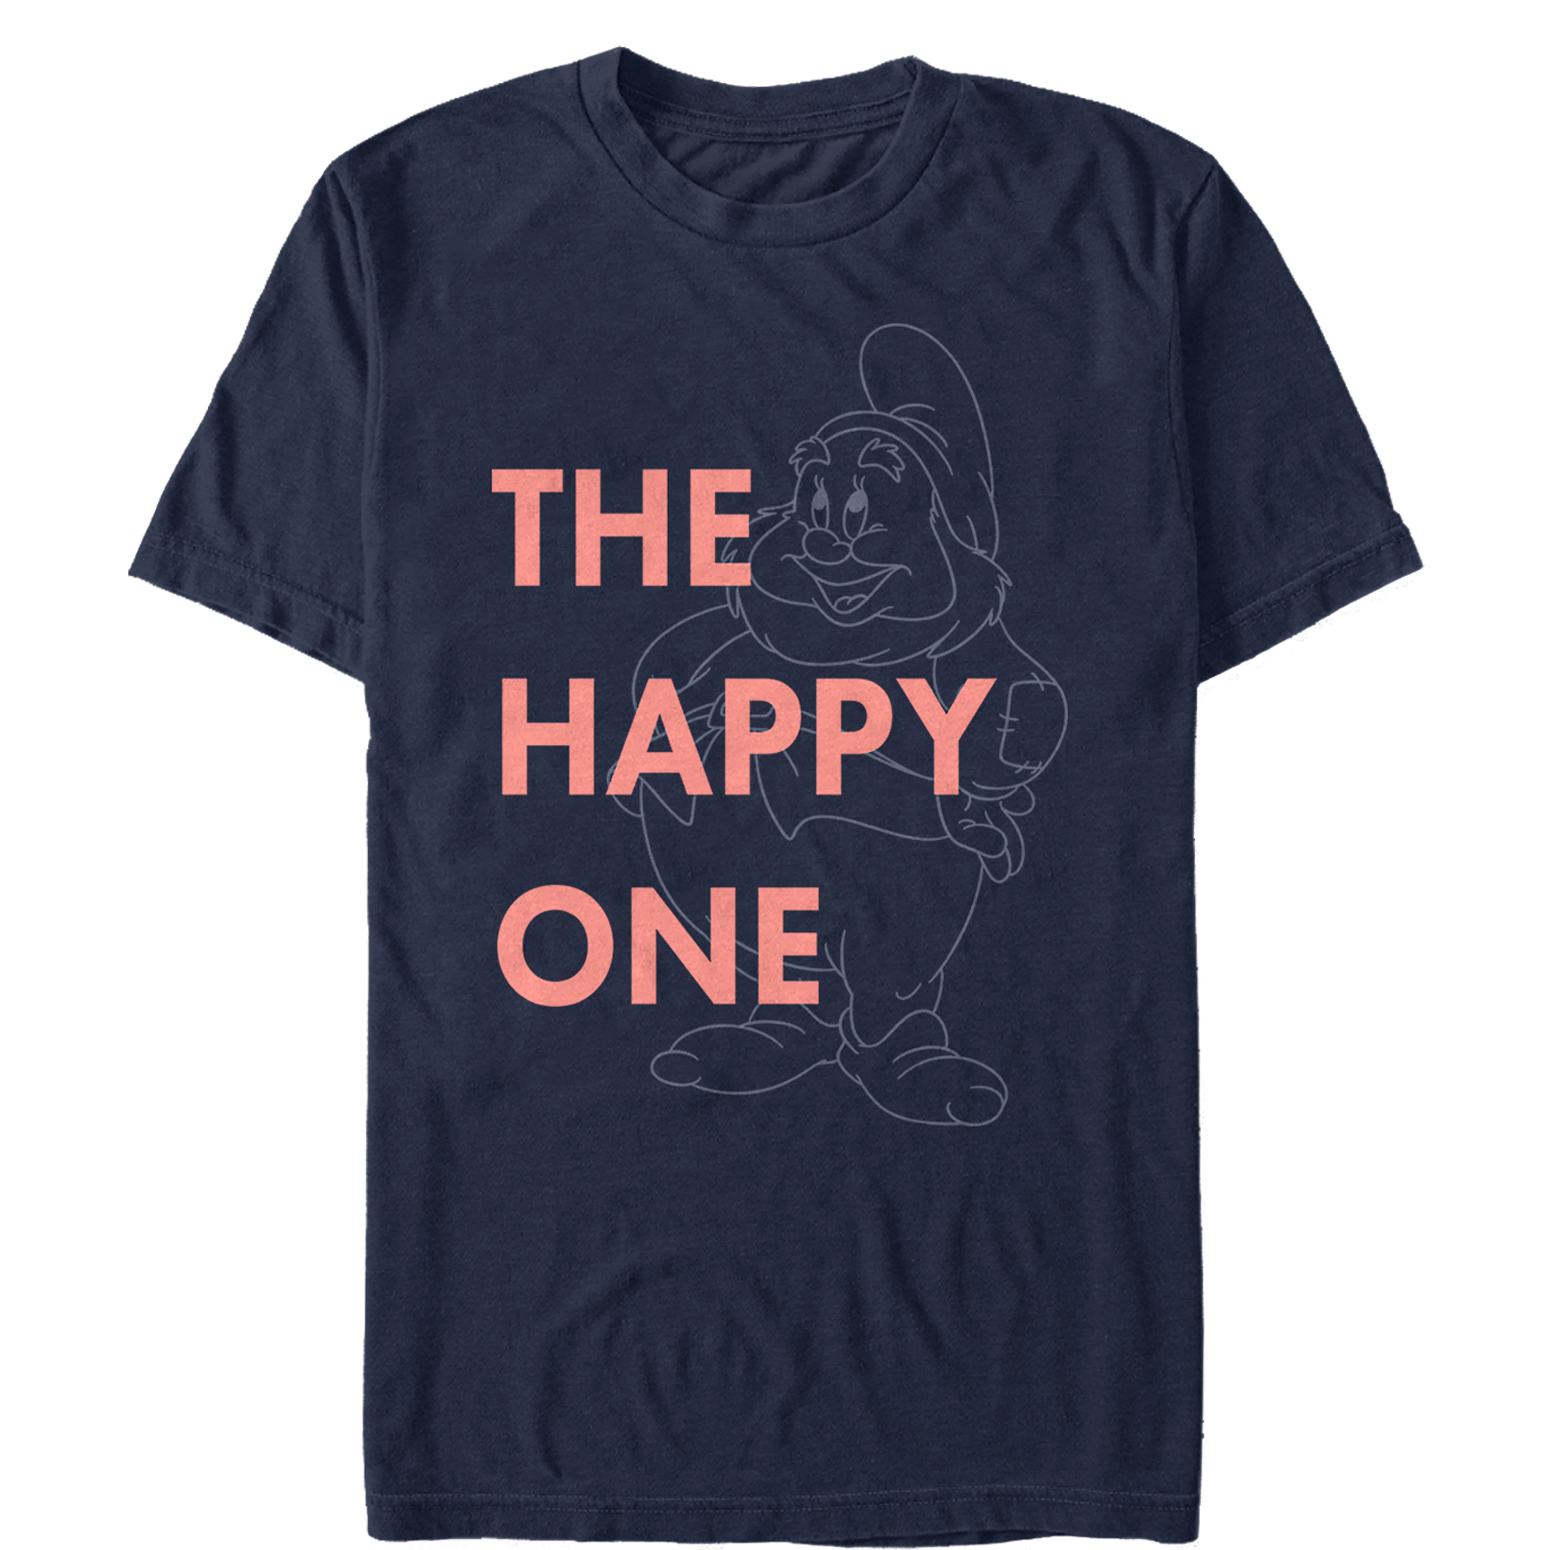 Snow White and the Seven Dwarves Men's Happy One T-Shirt